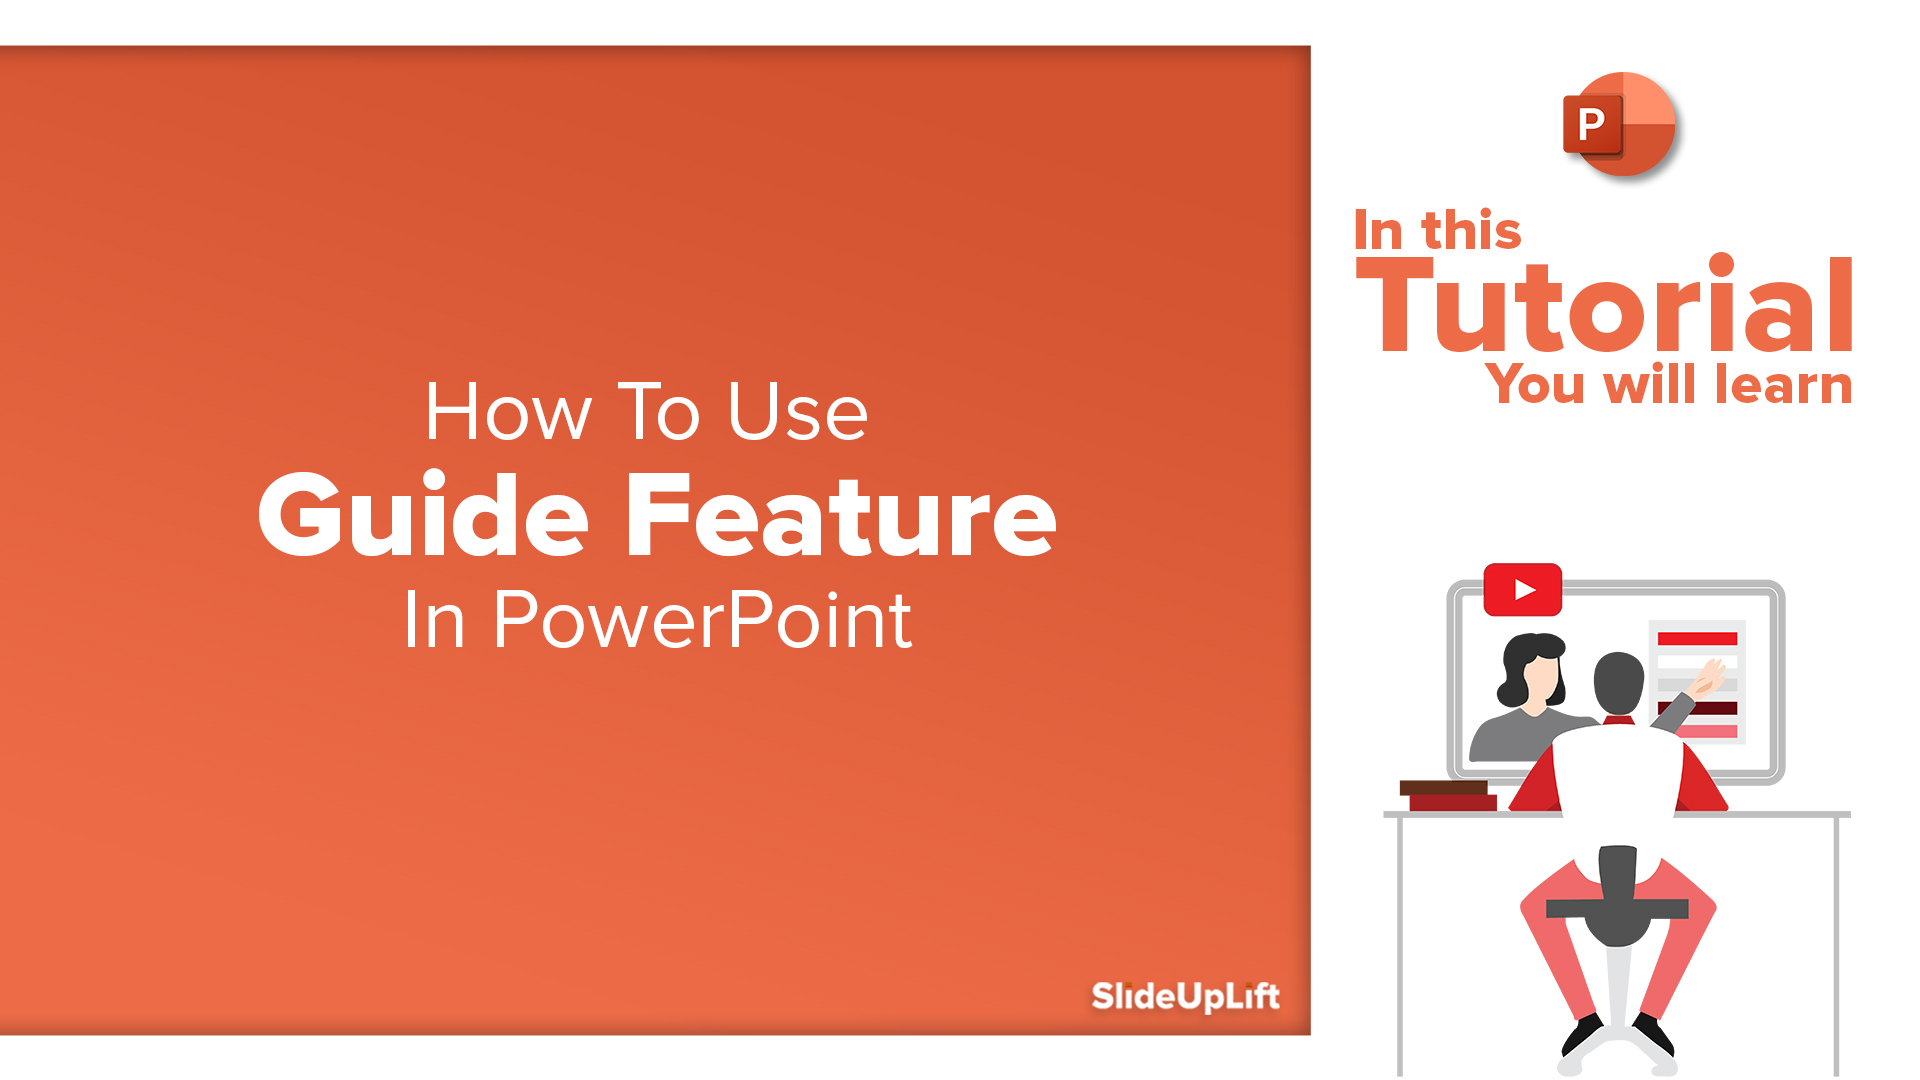 Do you struggle with aligning your content on the PowerPoint slide? Learn the use of PowerPoint Guides